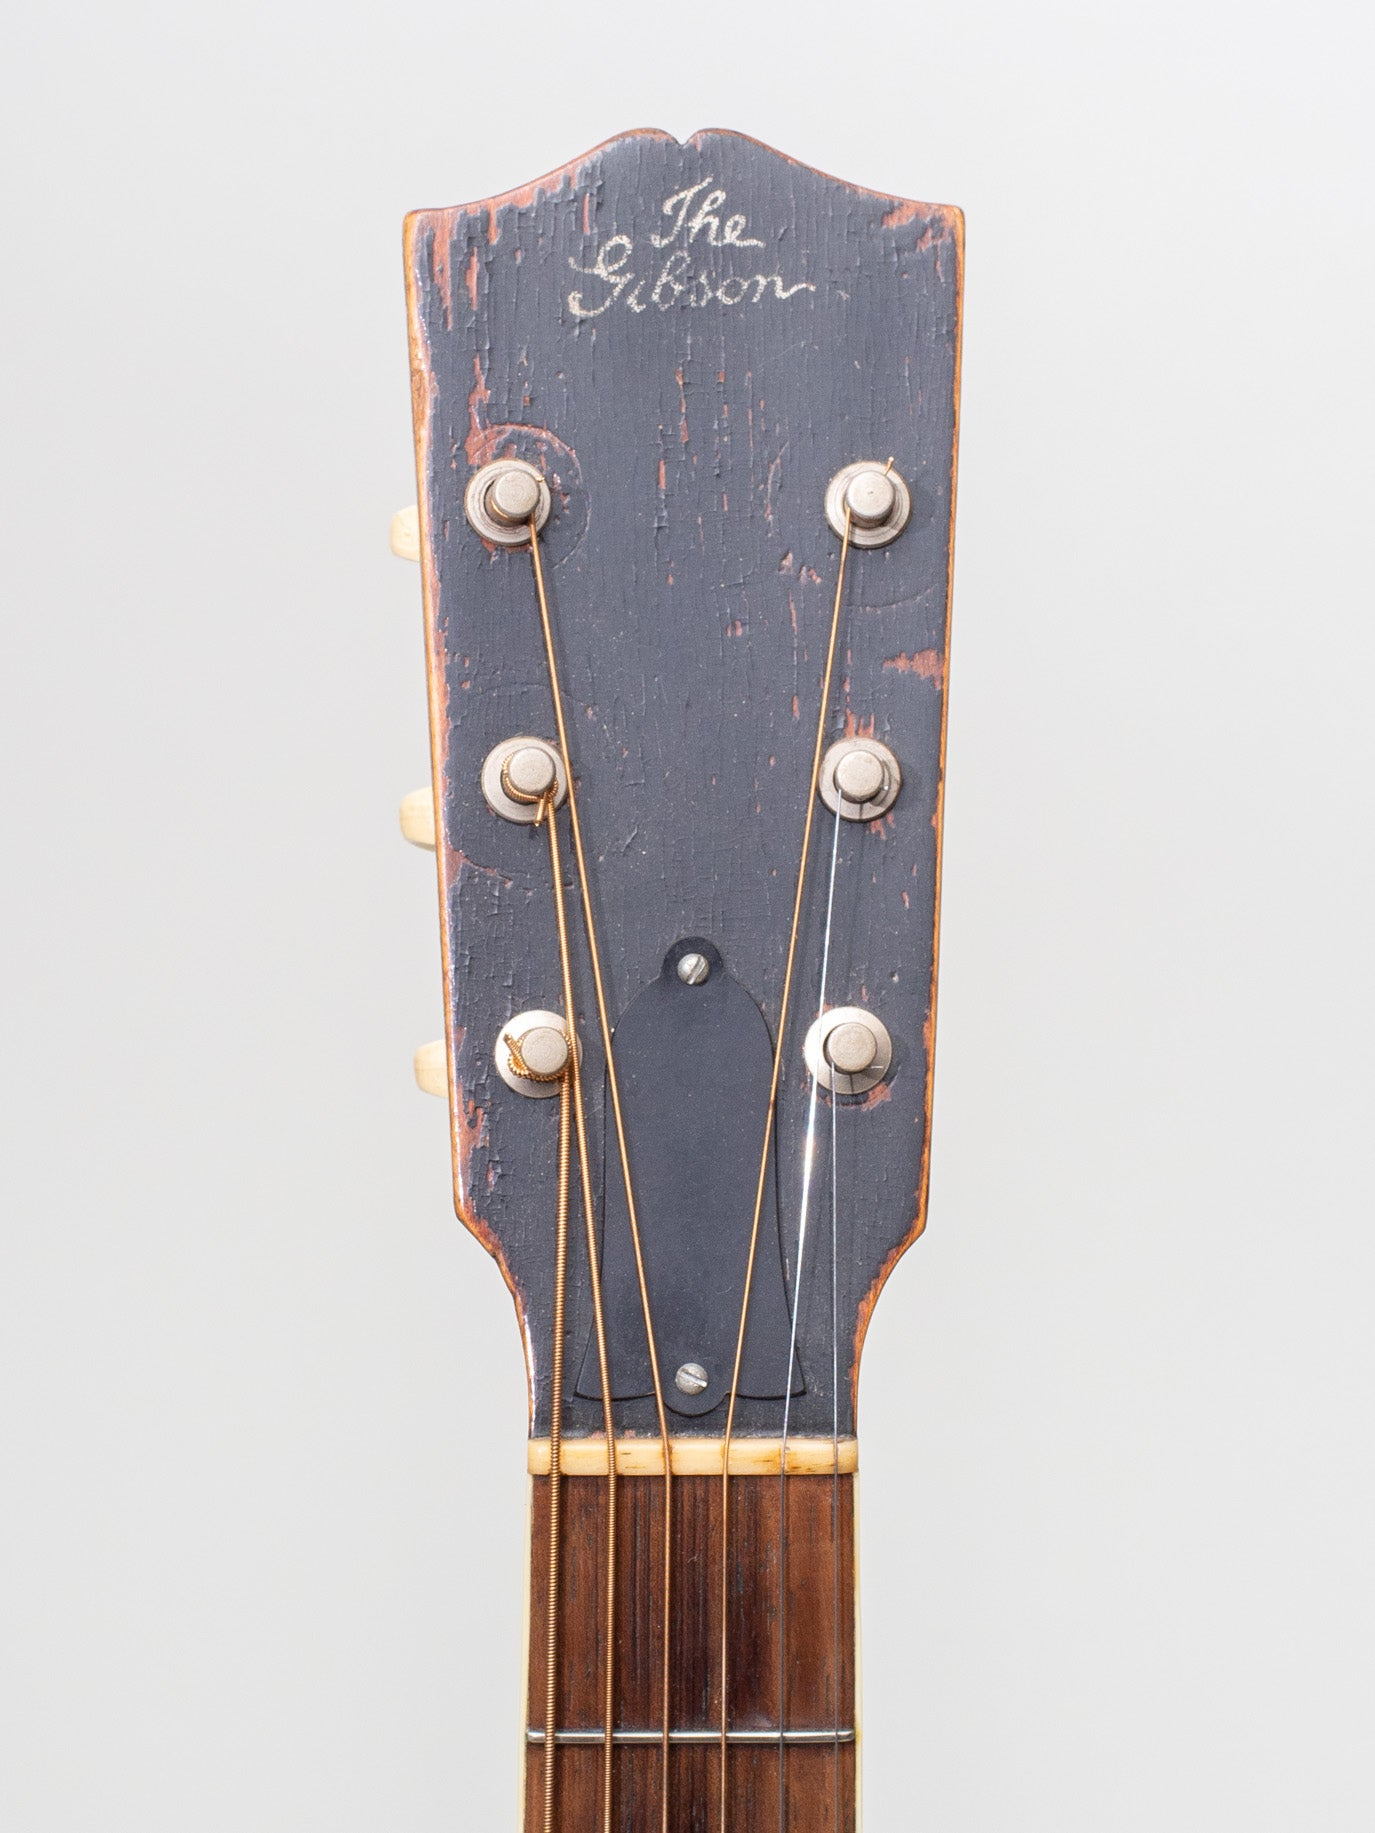 1927 Gibson GB-1